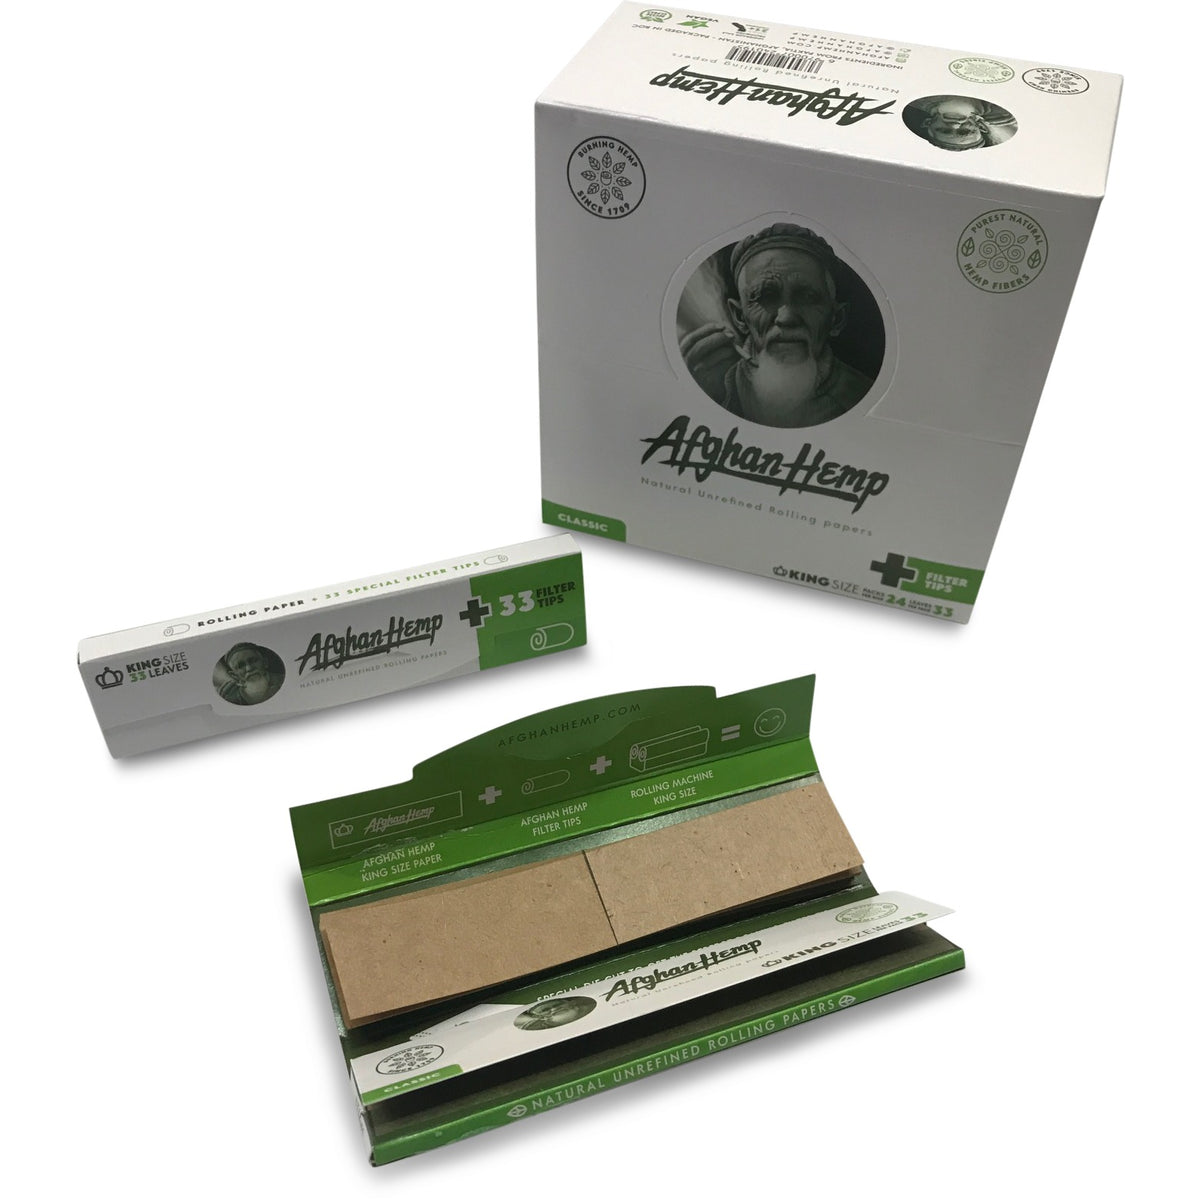 Afghan Hemp Rolling Papers - King Size + Tips